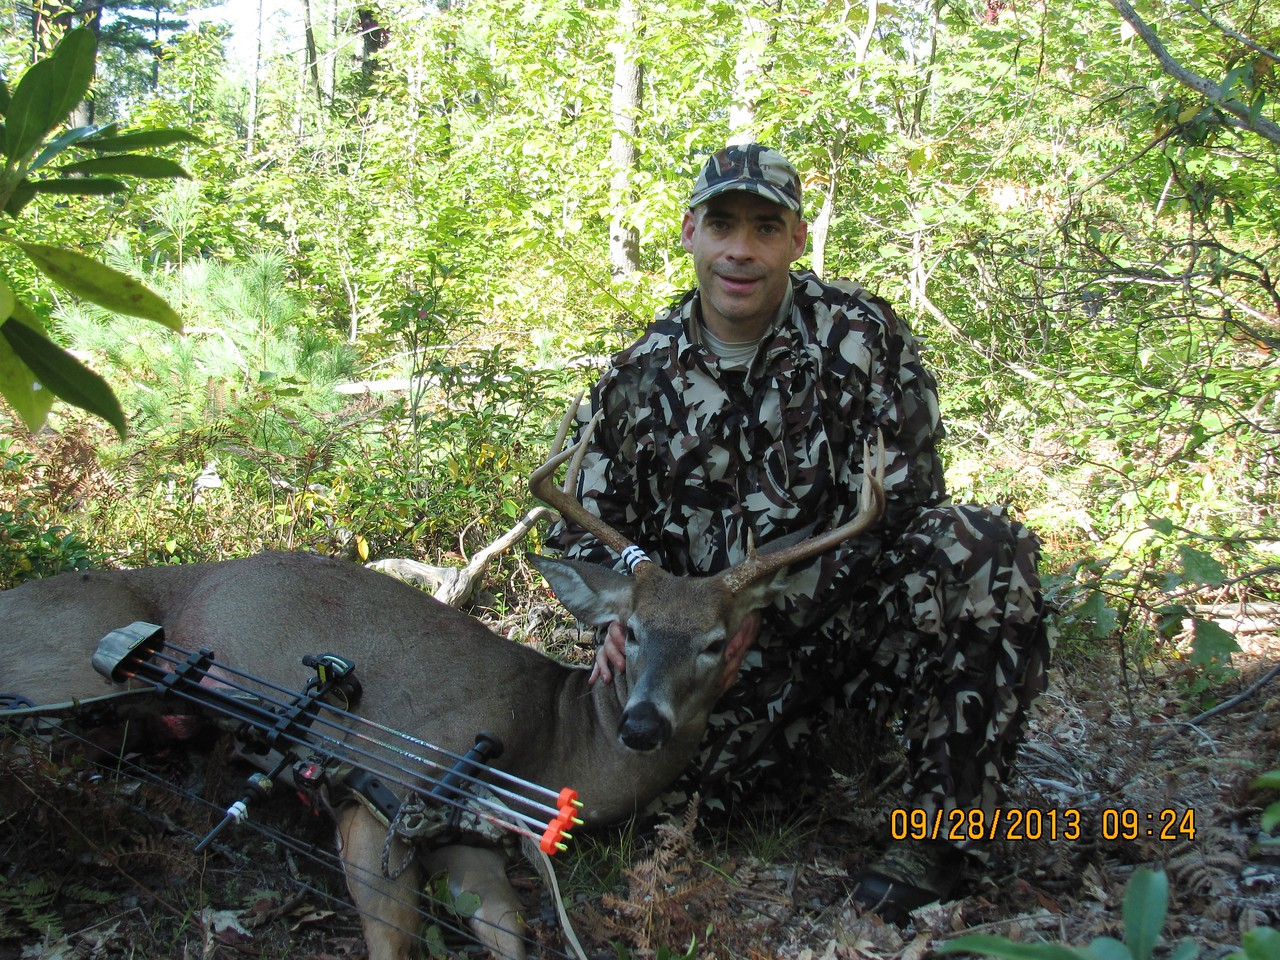 First Bow Buck! 8 points, 157 lbs, my old Darton Maverick bow, VAP arrow, 125gr Montec BH, FOB, Ripcord Code Red rest, ASAT camo.